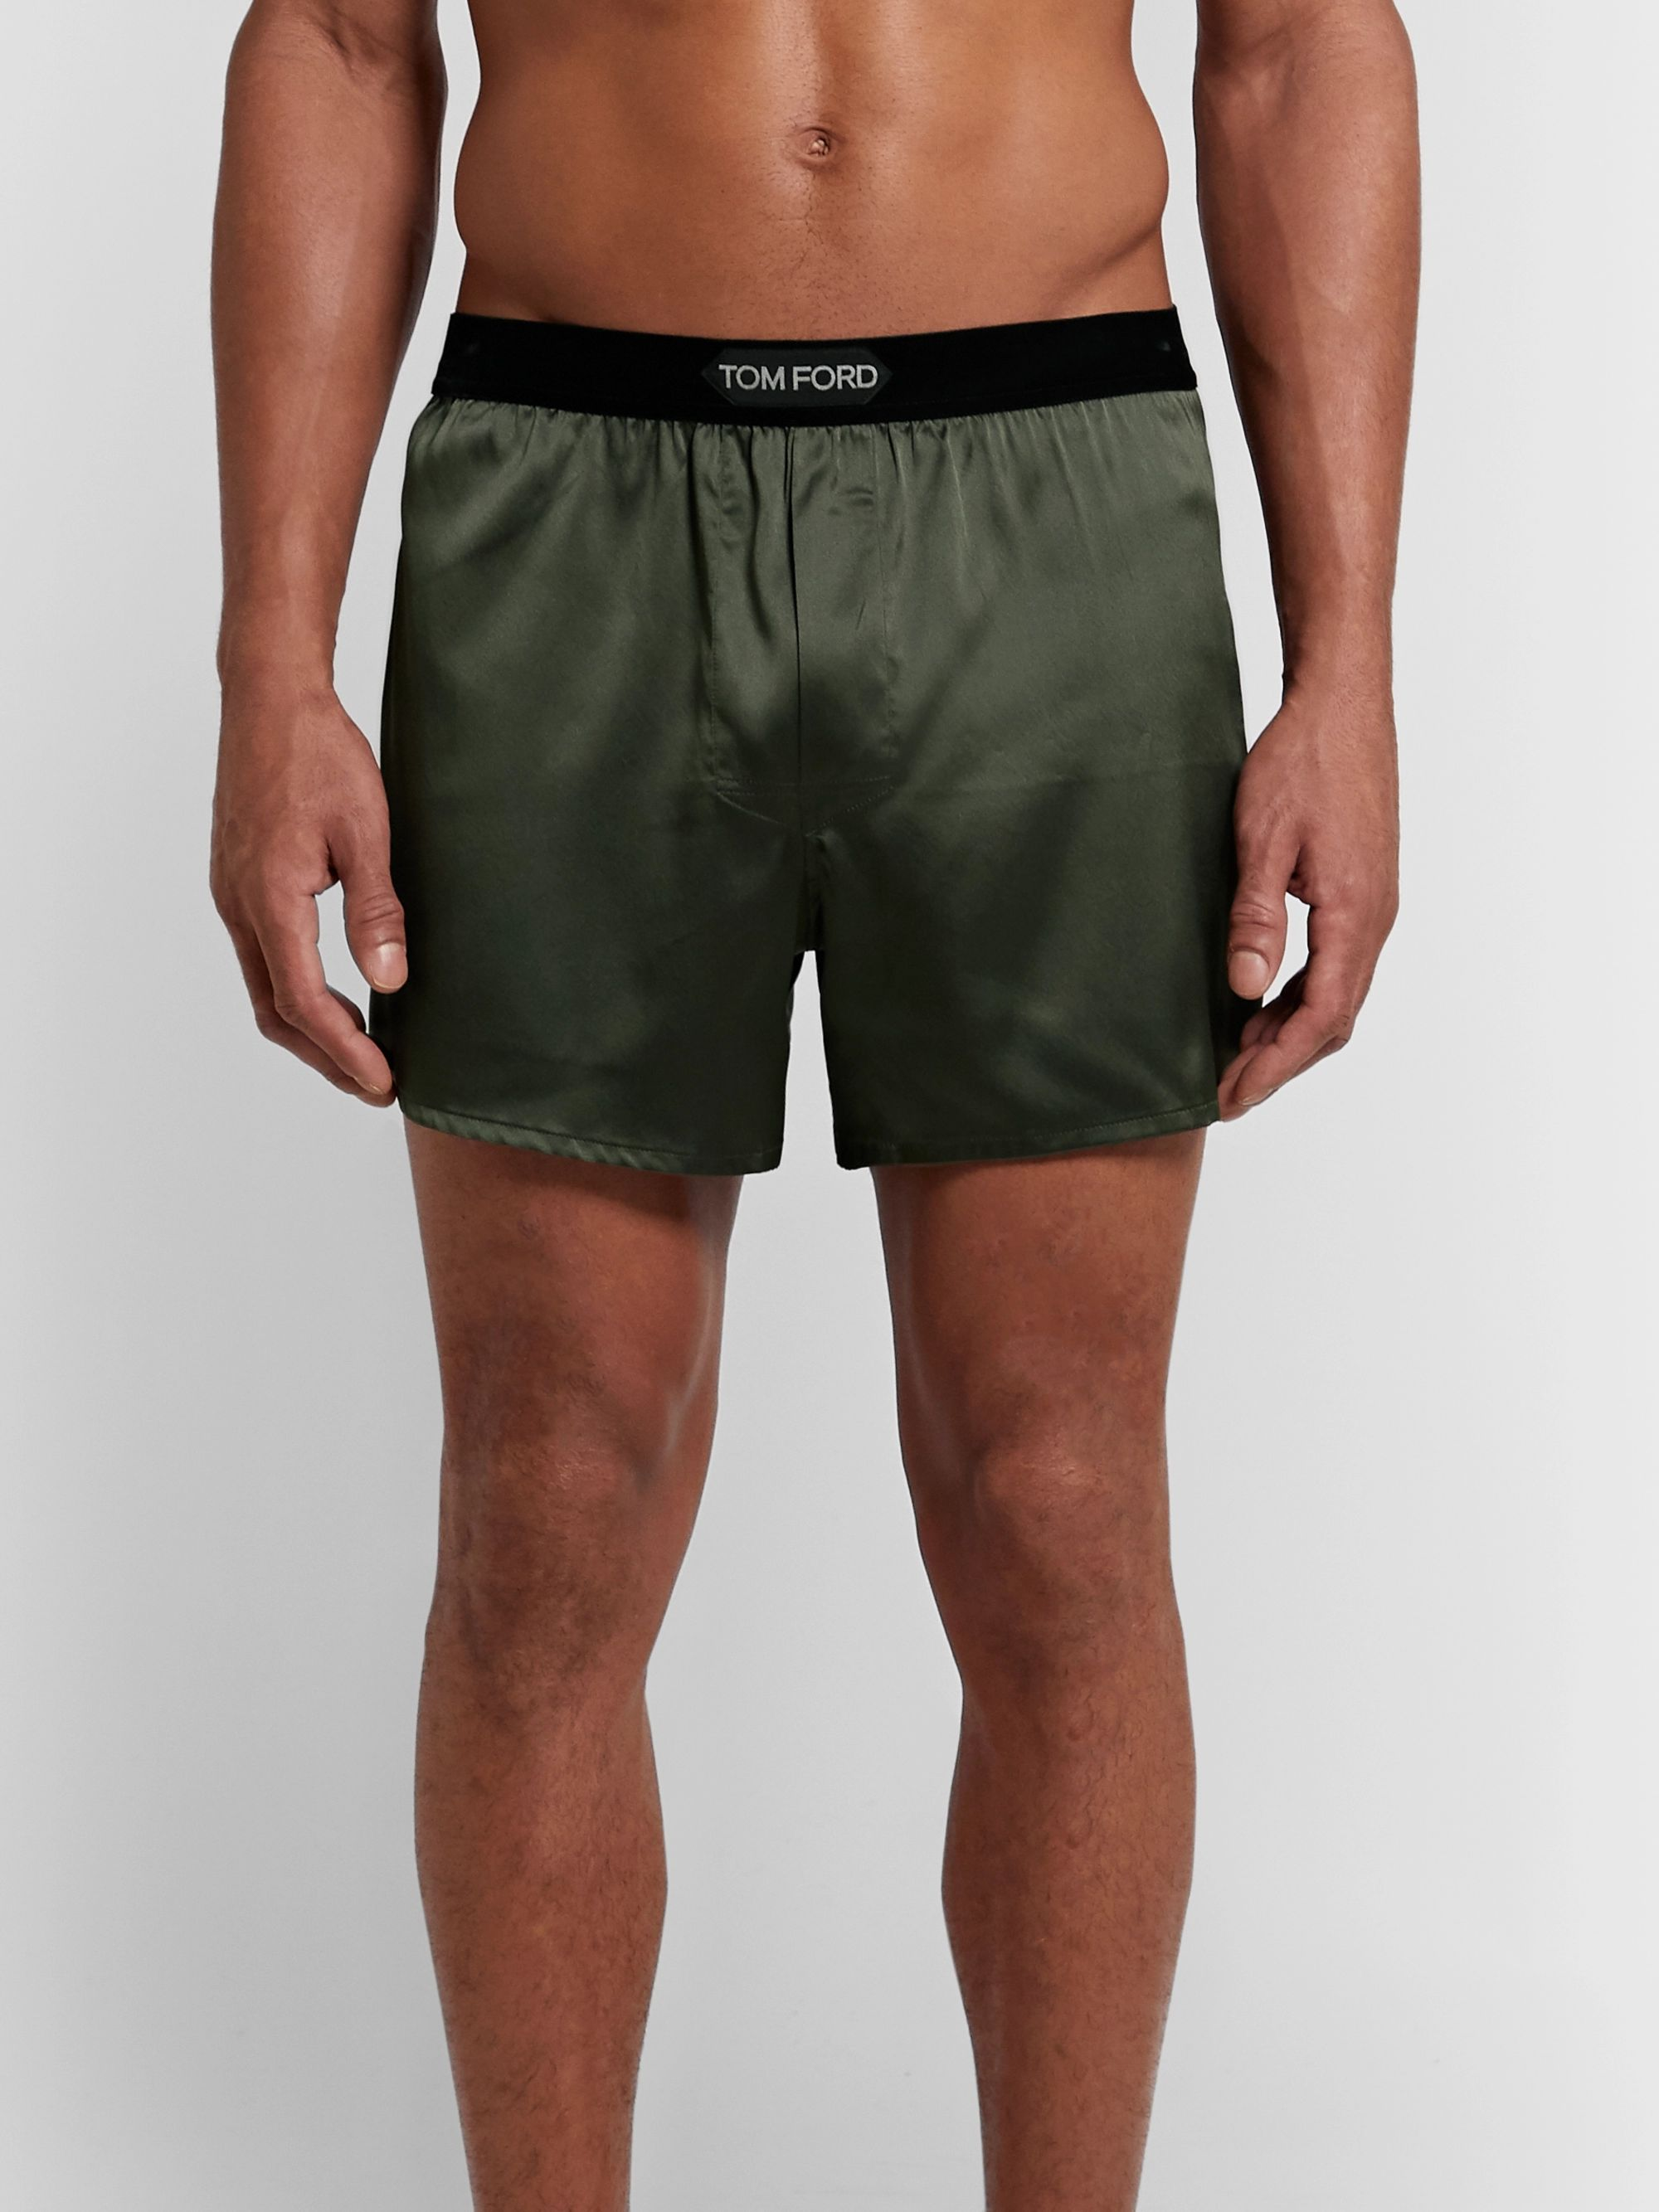 Olive Green 100/% Cotton Military Boxer Shorts